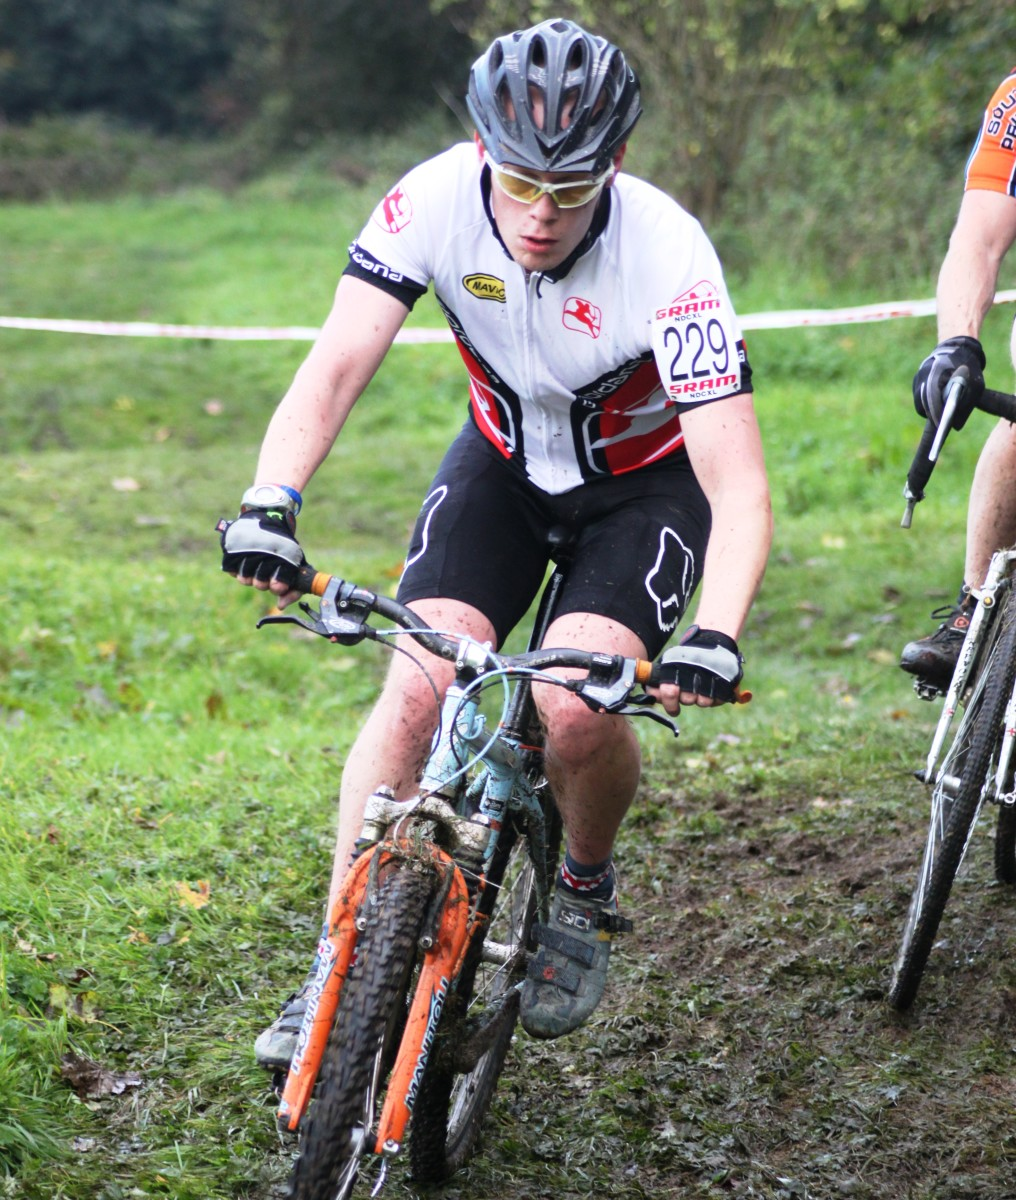 5 Great Cyclocross Tires For A Mountain Bike